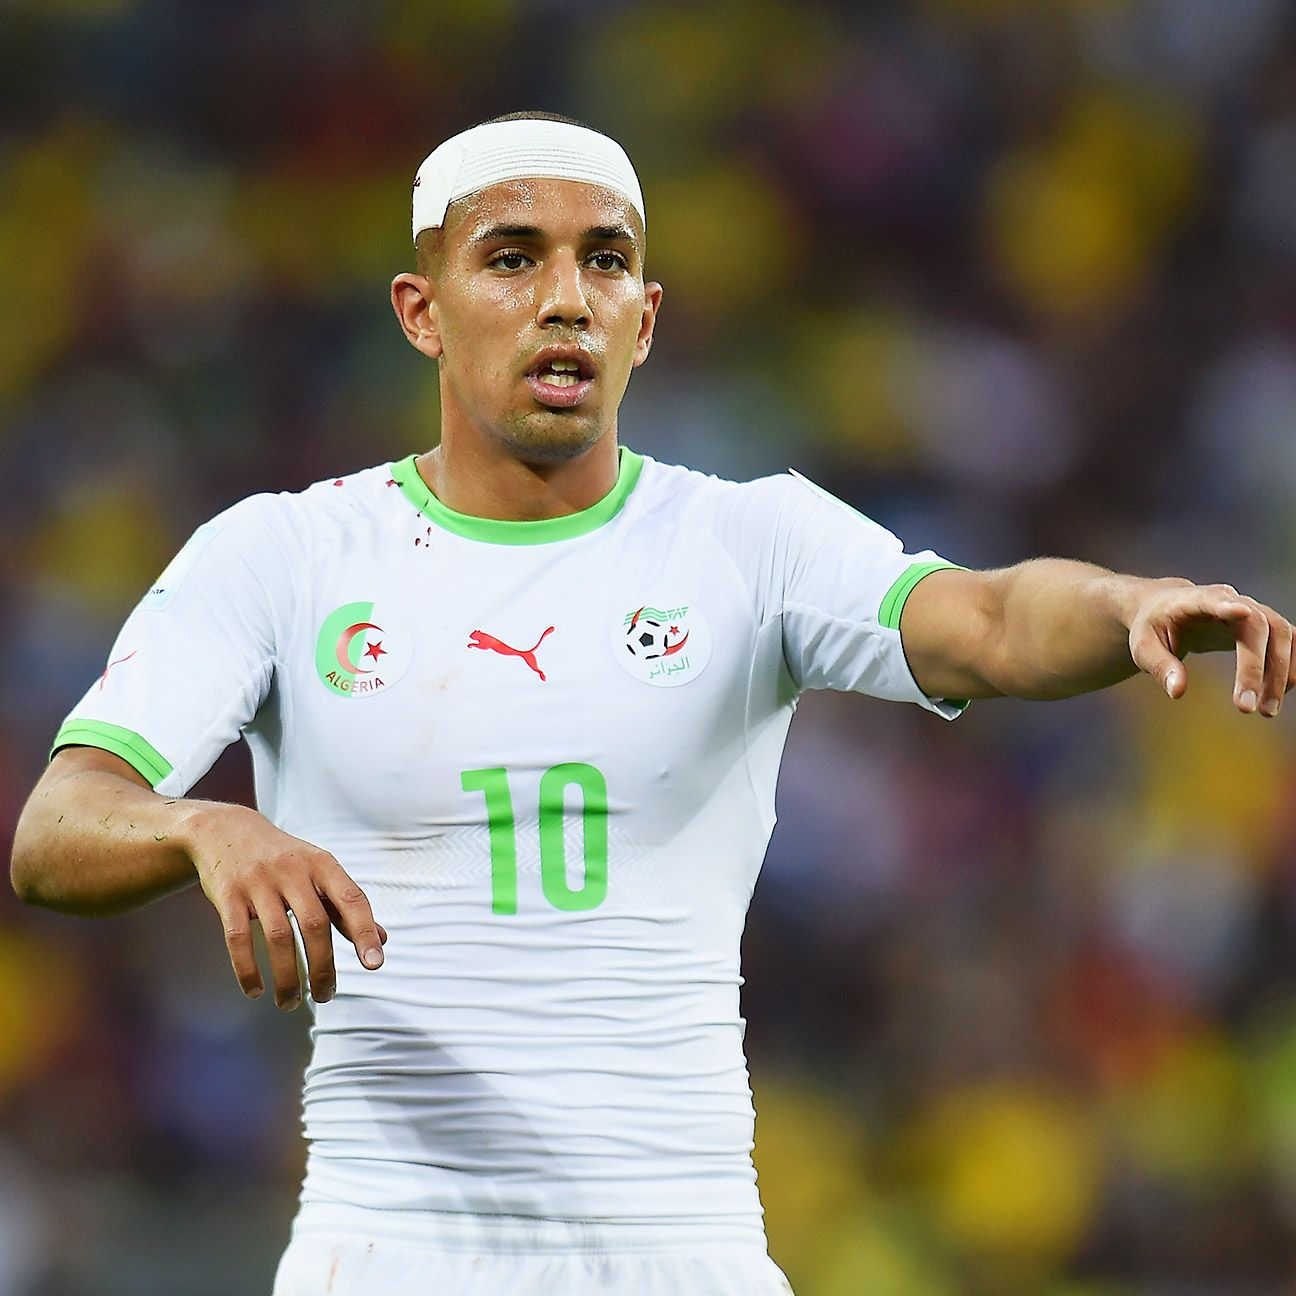 Sofiane Feghouli has helped lead Algeria into the second round of the World Cup for the first time ever.